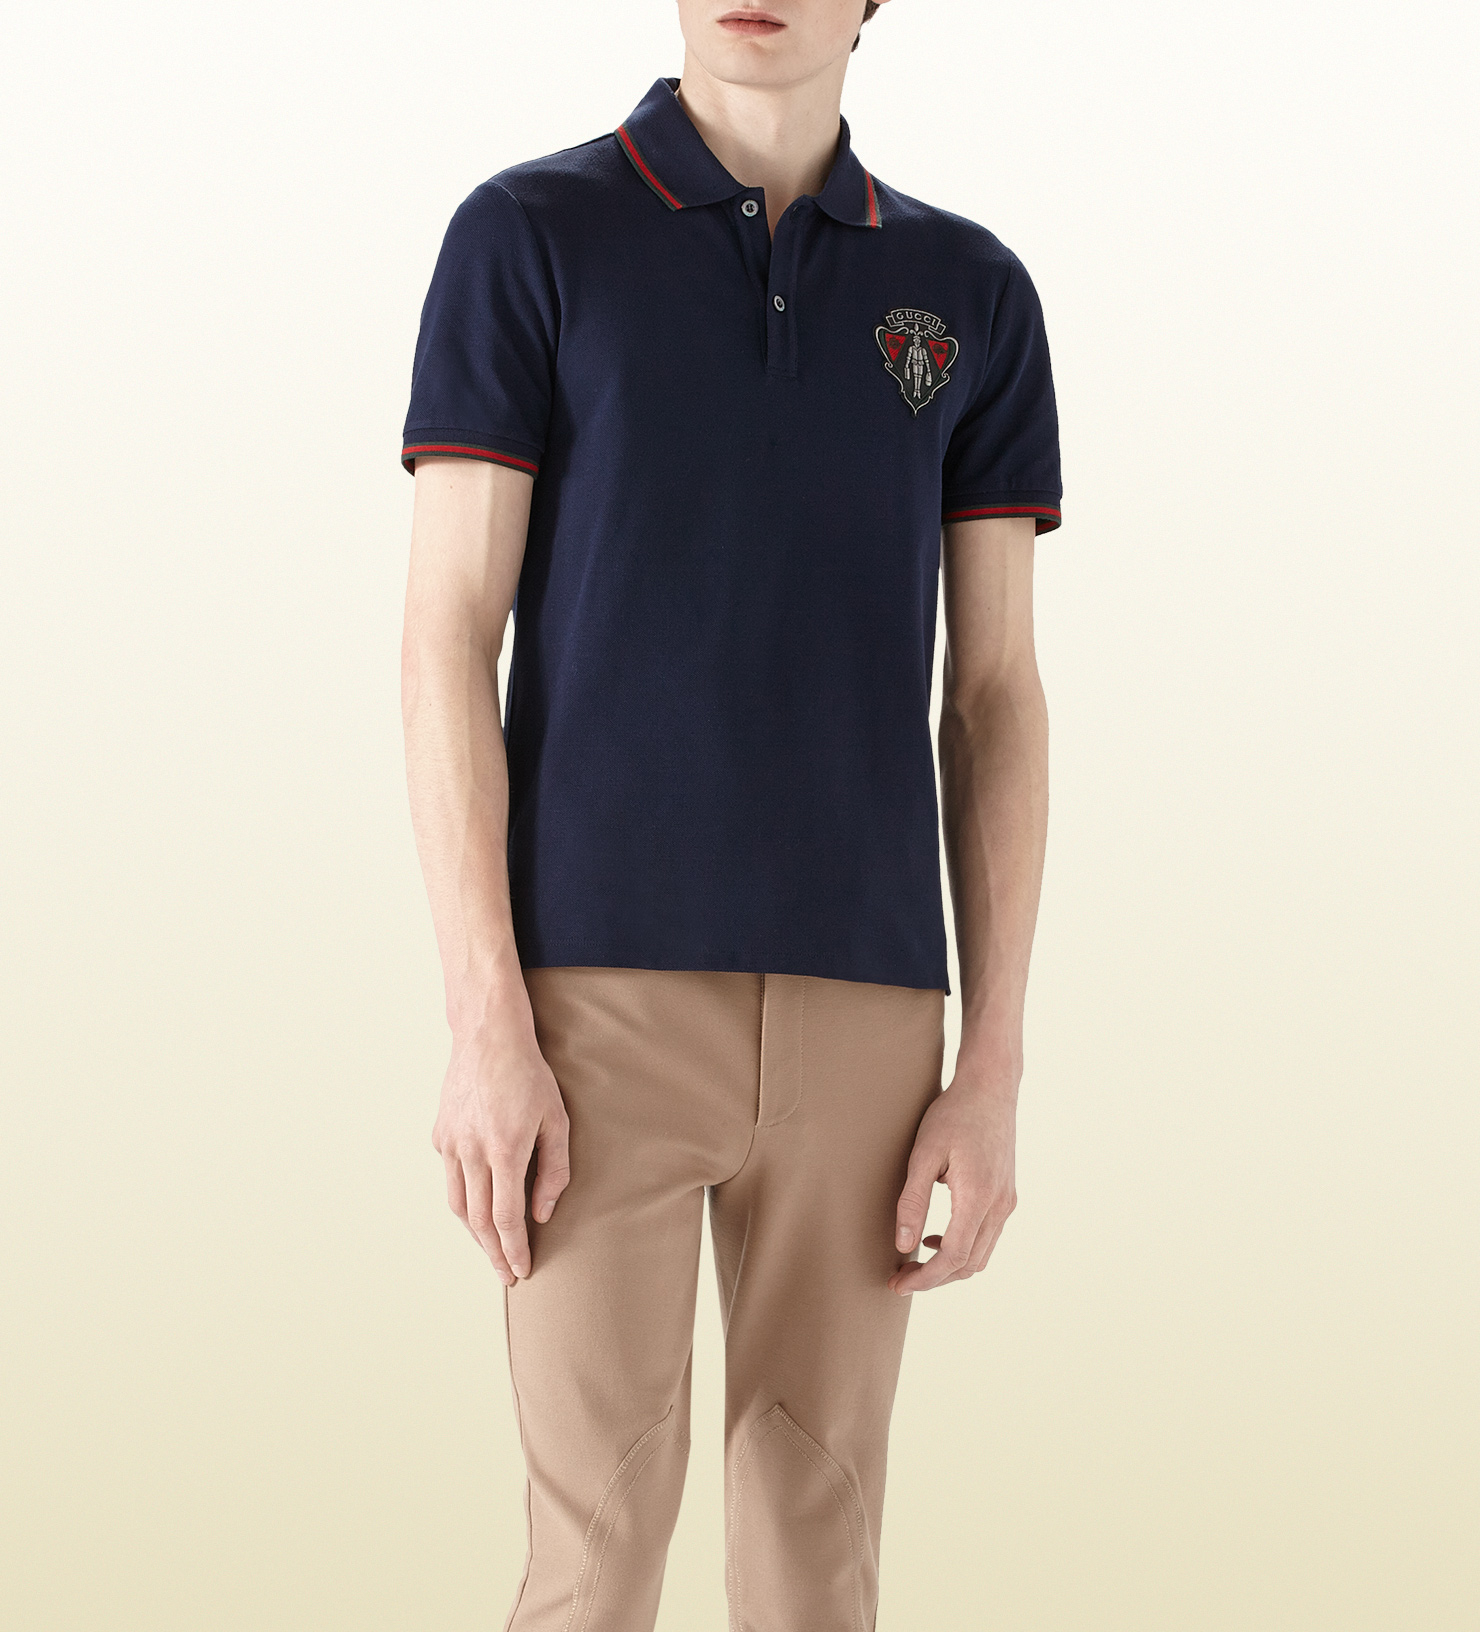 gucci polo shirts 2015